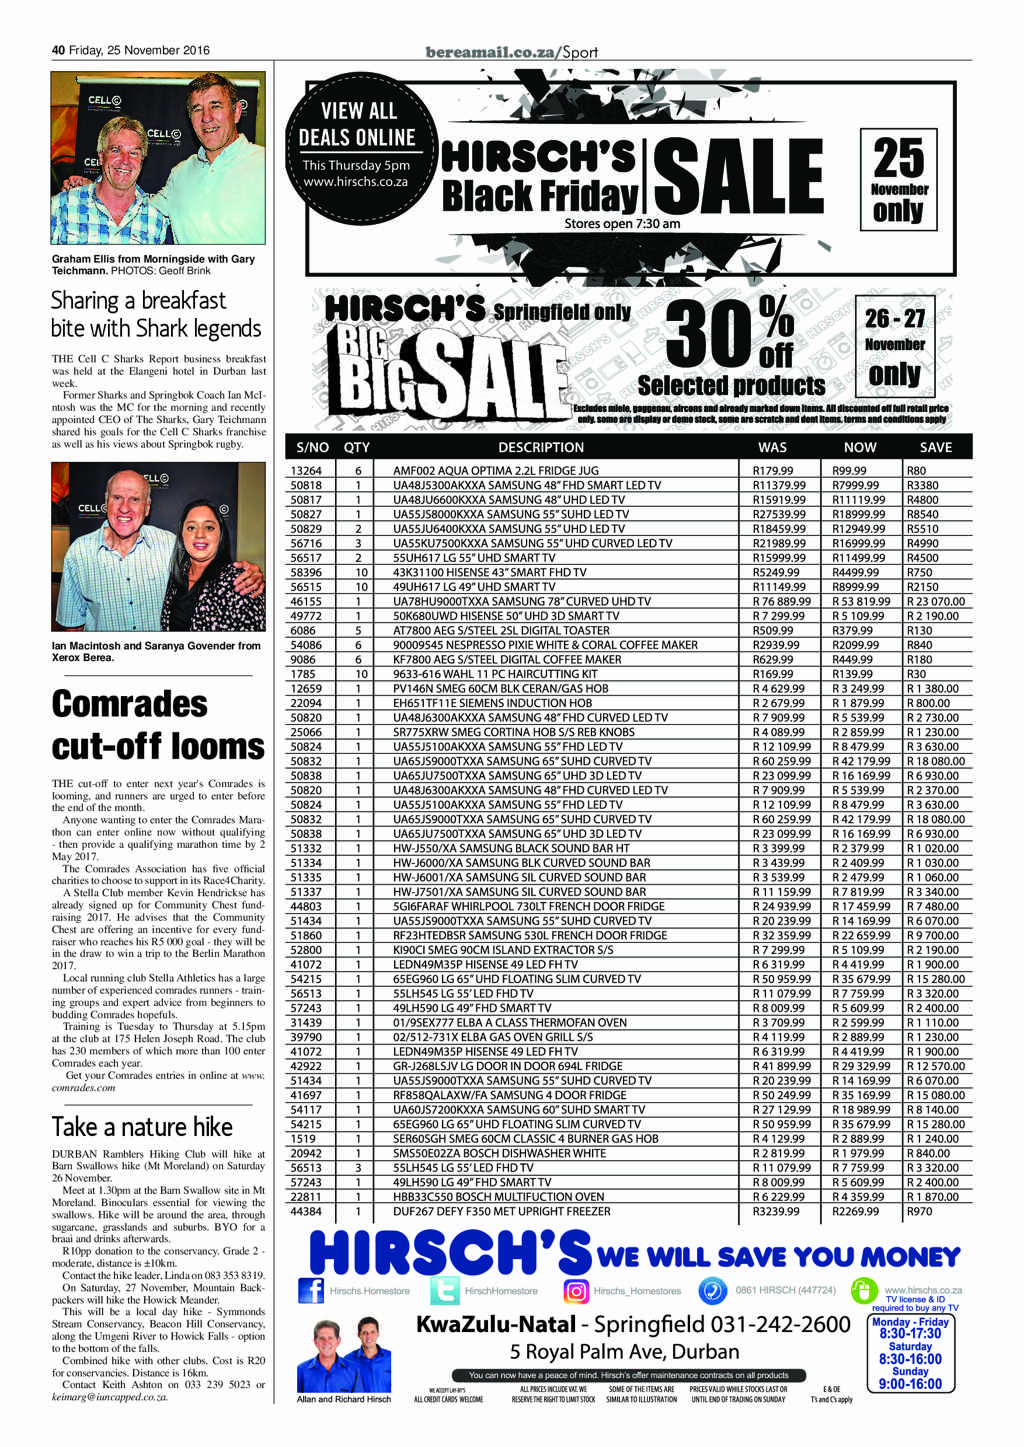 berea-mail-25-november-2016-epapers-page-40